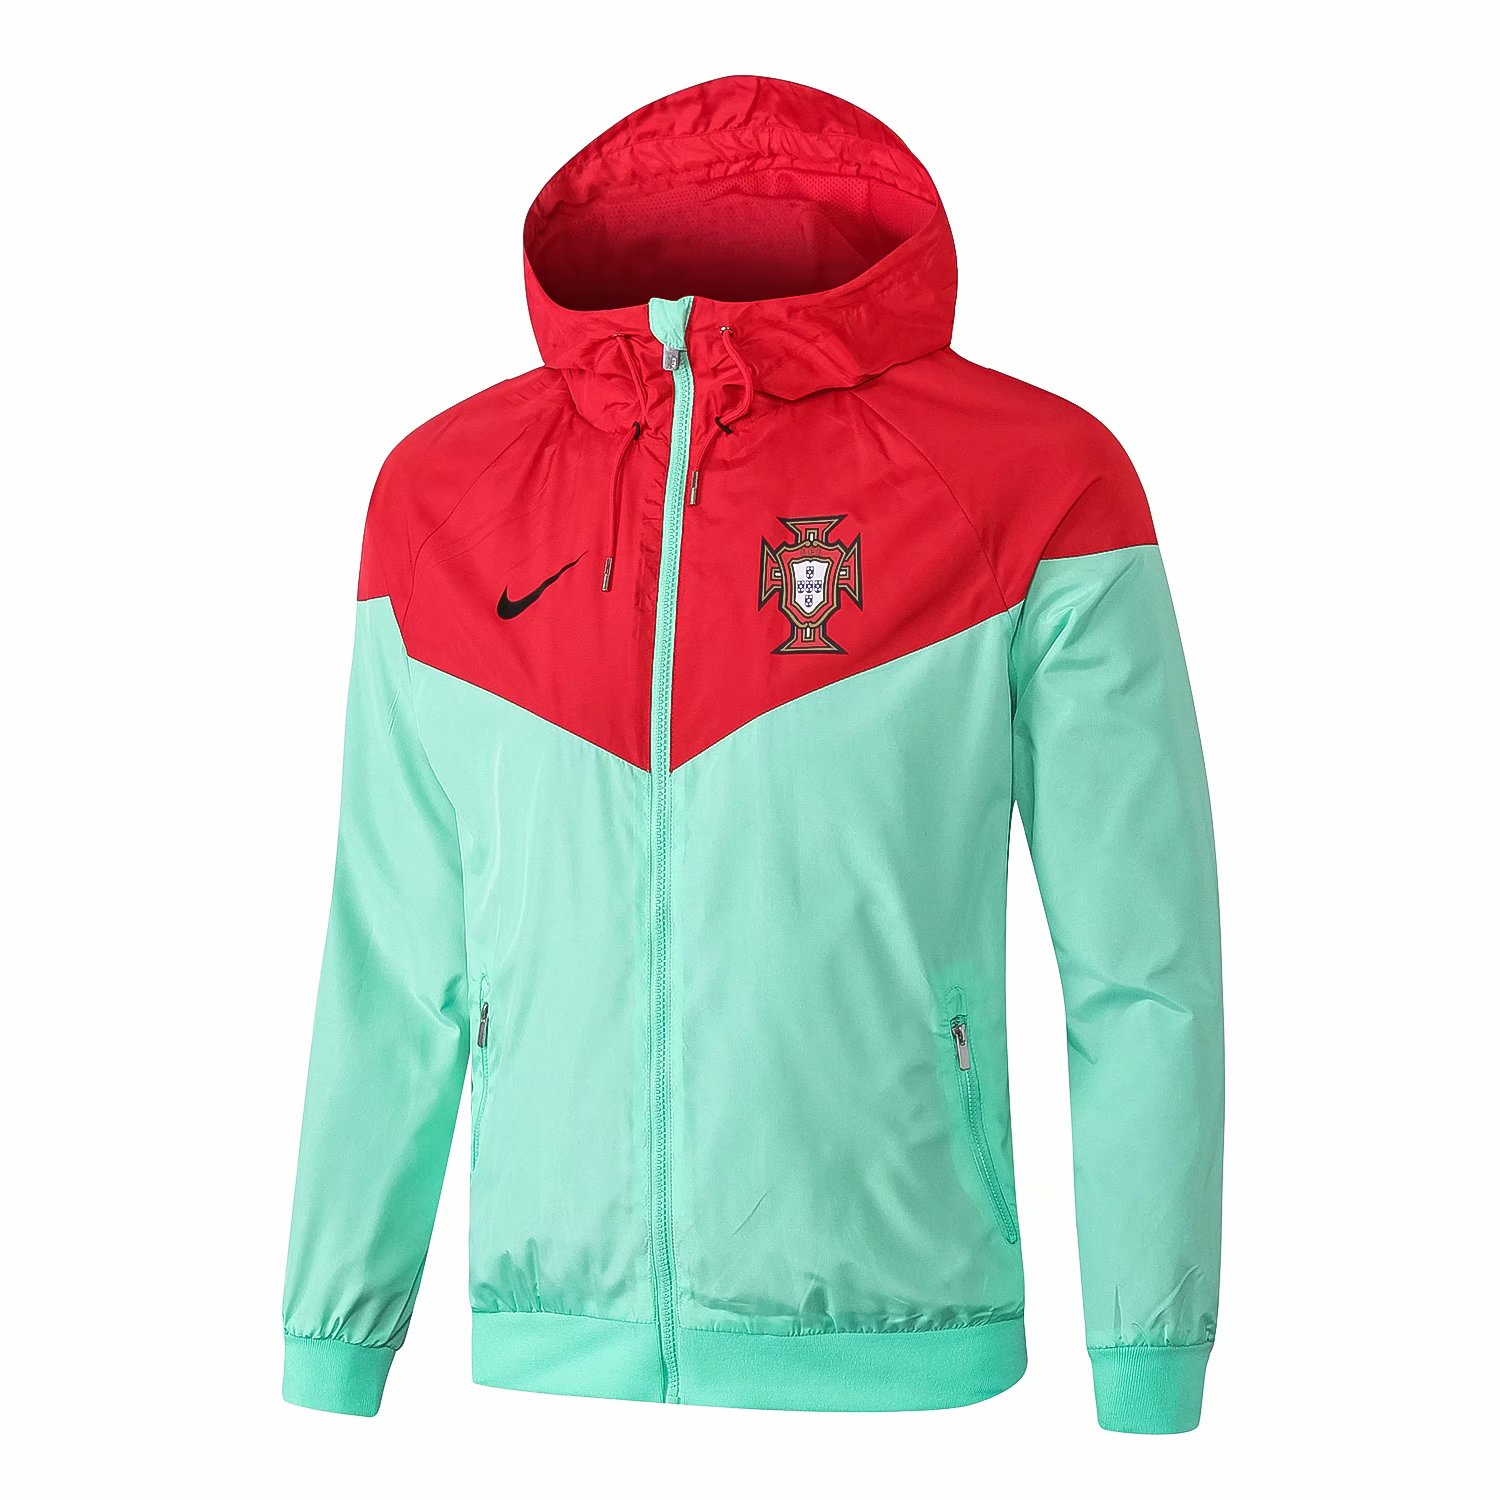 e9f9524322f8 US  32.8 - Portugal Authentic Woven Windrunner Red - Green 2018 -  www.fcsoccerworld.com